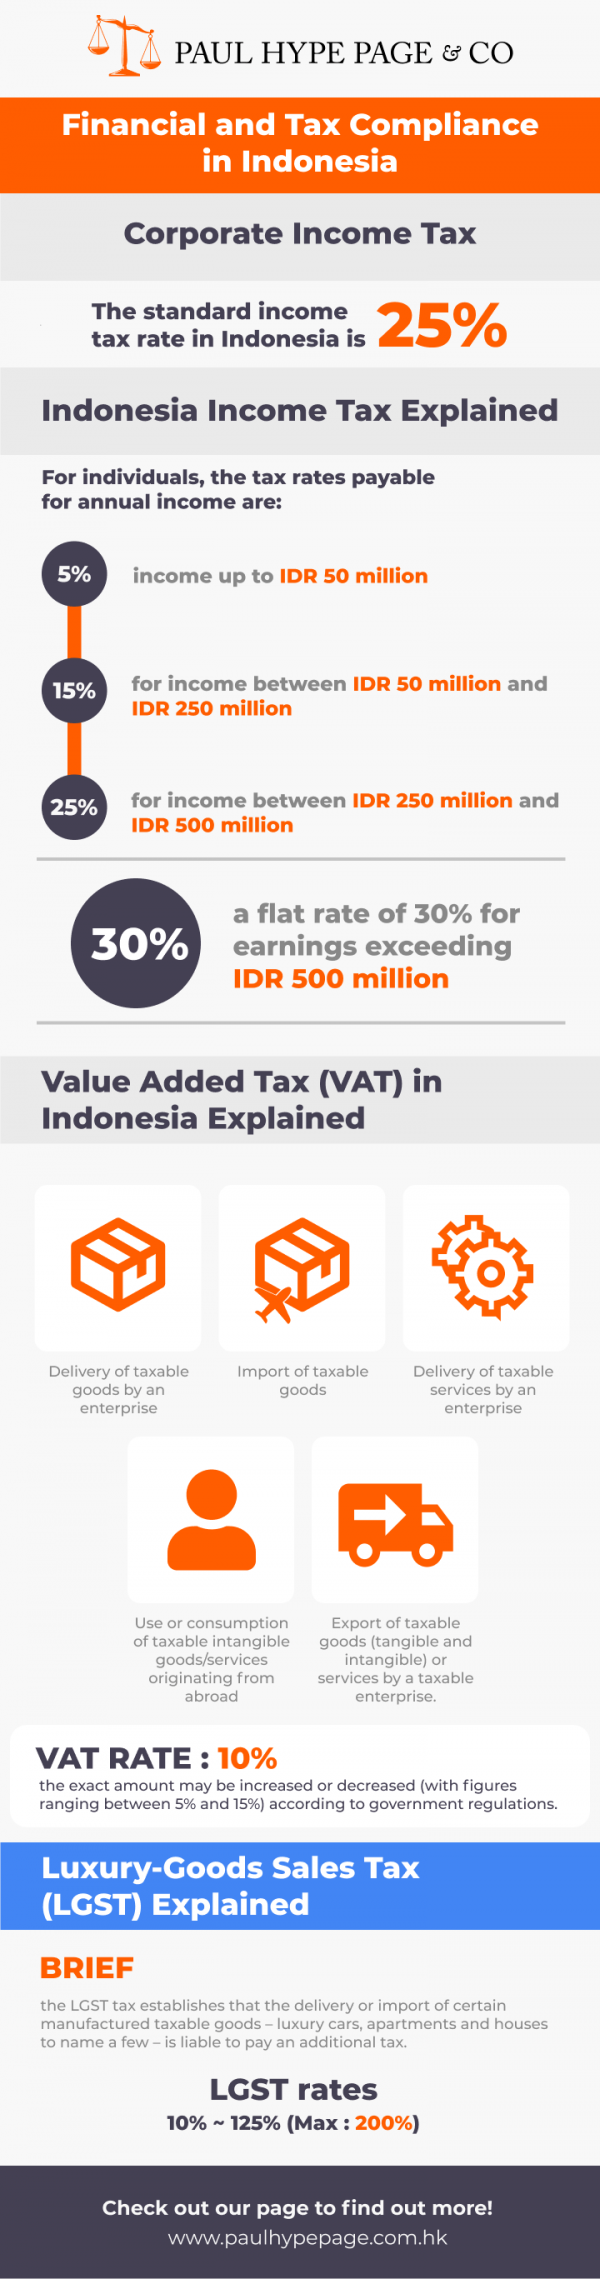 Indonesia Financial and Tax Compliance